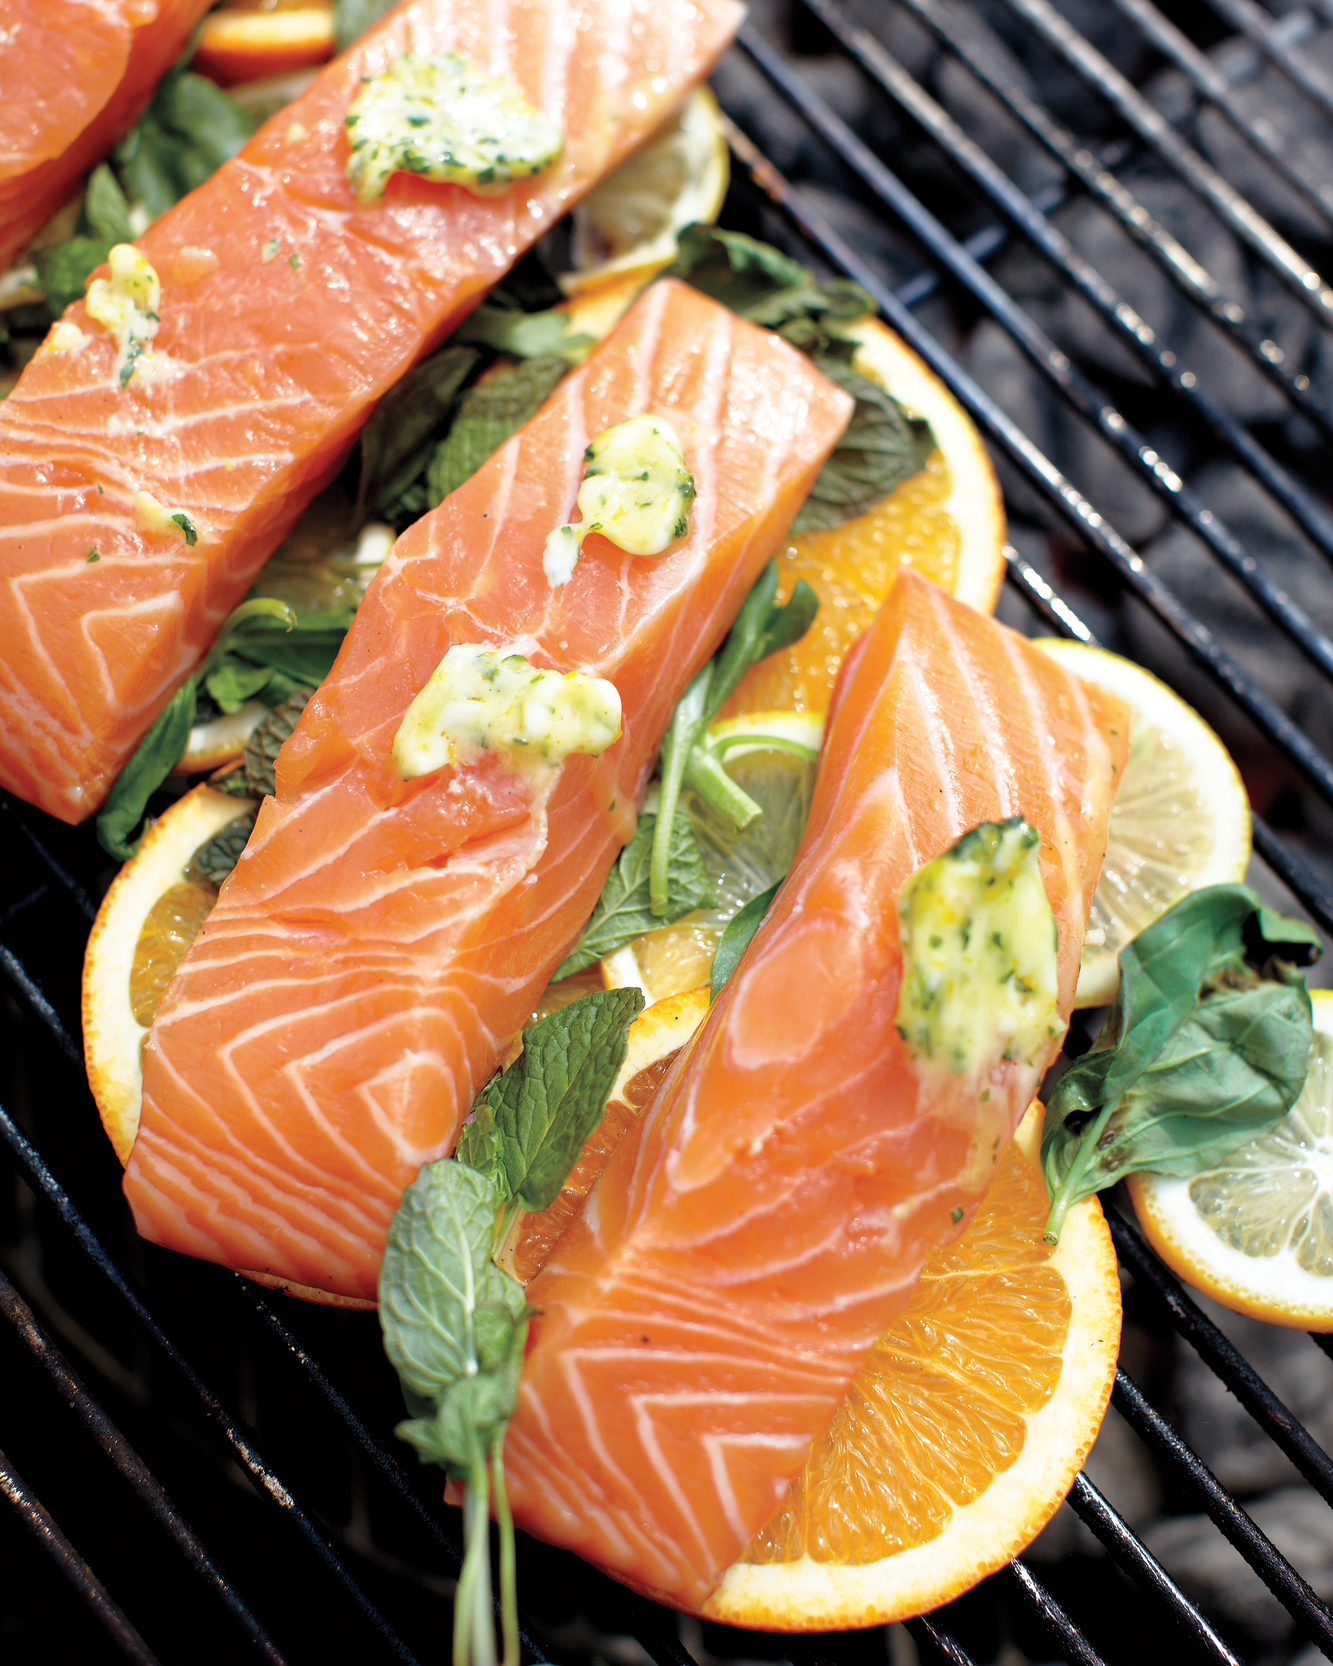 Grill Fish Over Citrus Slices